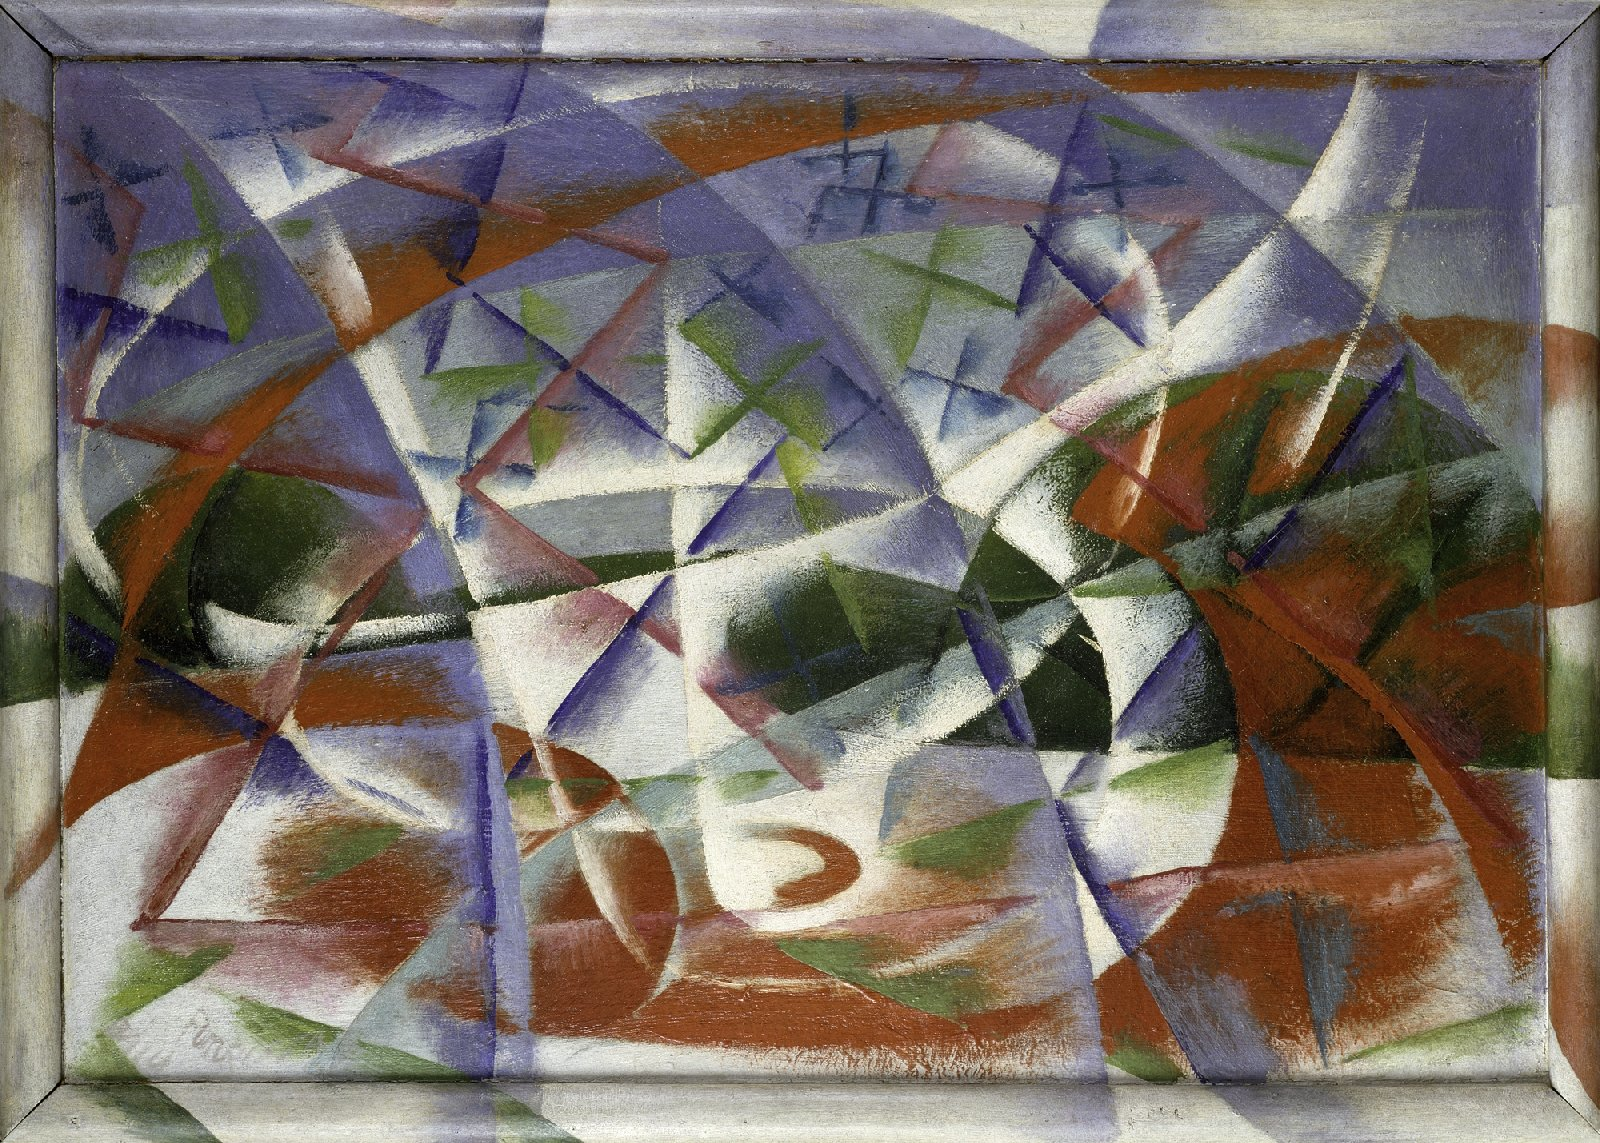 Giacomo Balla